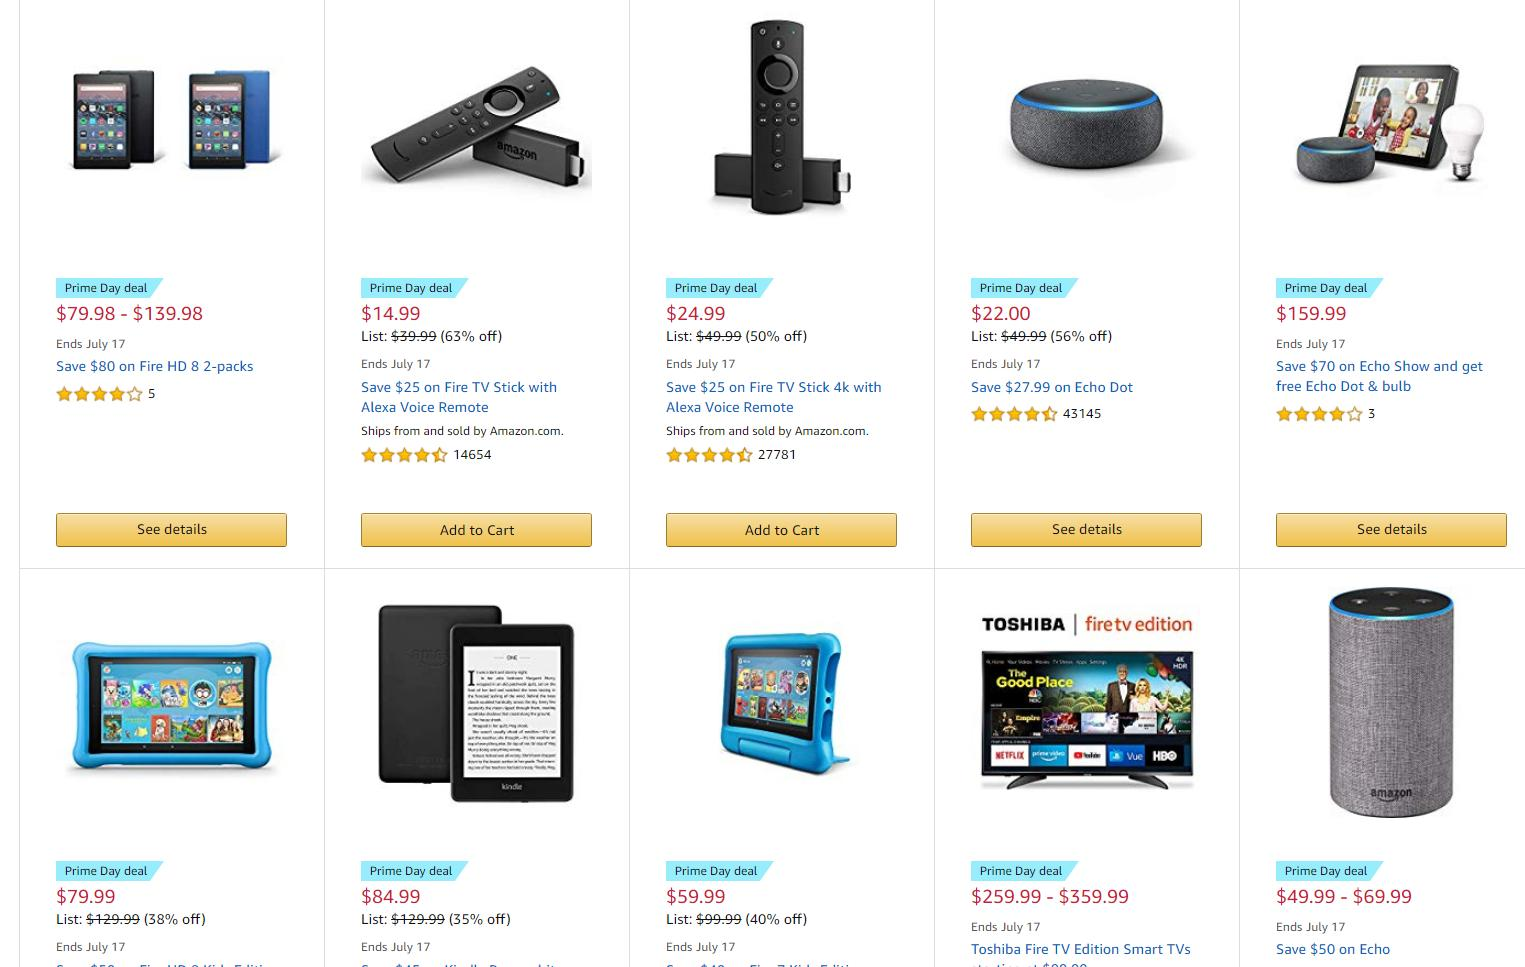 fcf80a9f HOT DEAL ALERT: Amazon Prime Day device deals are available NOW: Fire TV  Sticks ($14.99), Echo, Fire tablets, Kindles, Ring Doorbell & more ::  WRAL.com